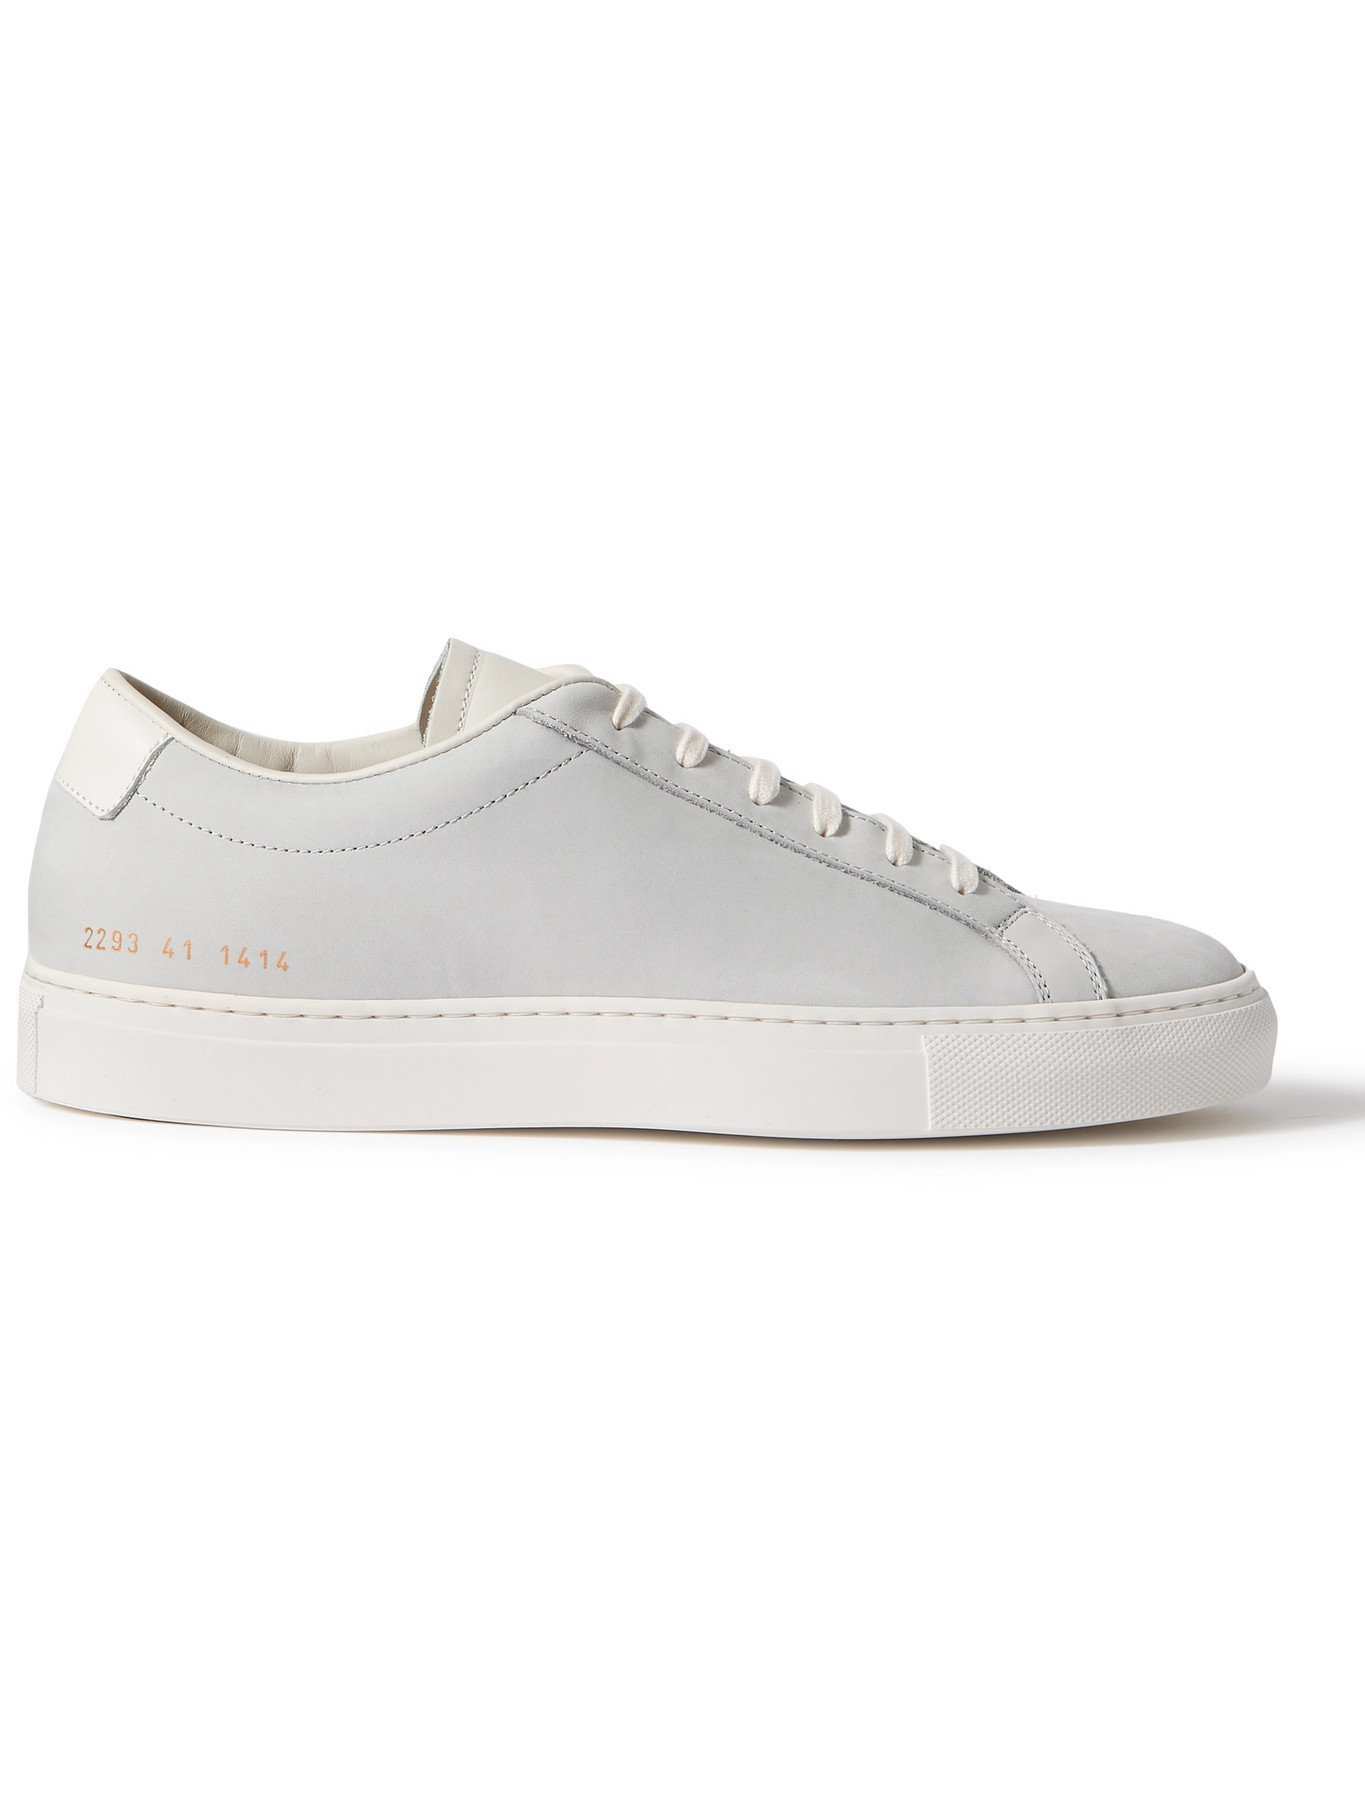 Photo: COMMON PROJECTS - Original Achilles Leather-Trimmed Nubuck Sneakers - Gray